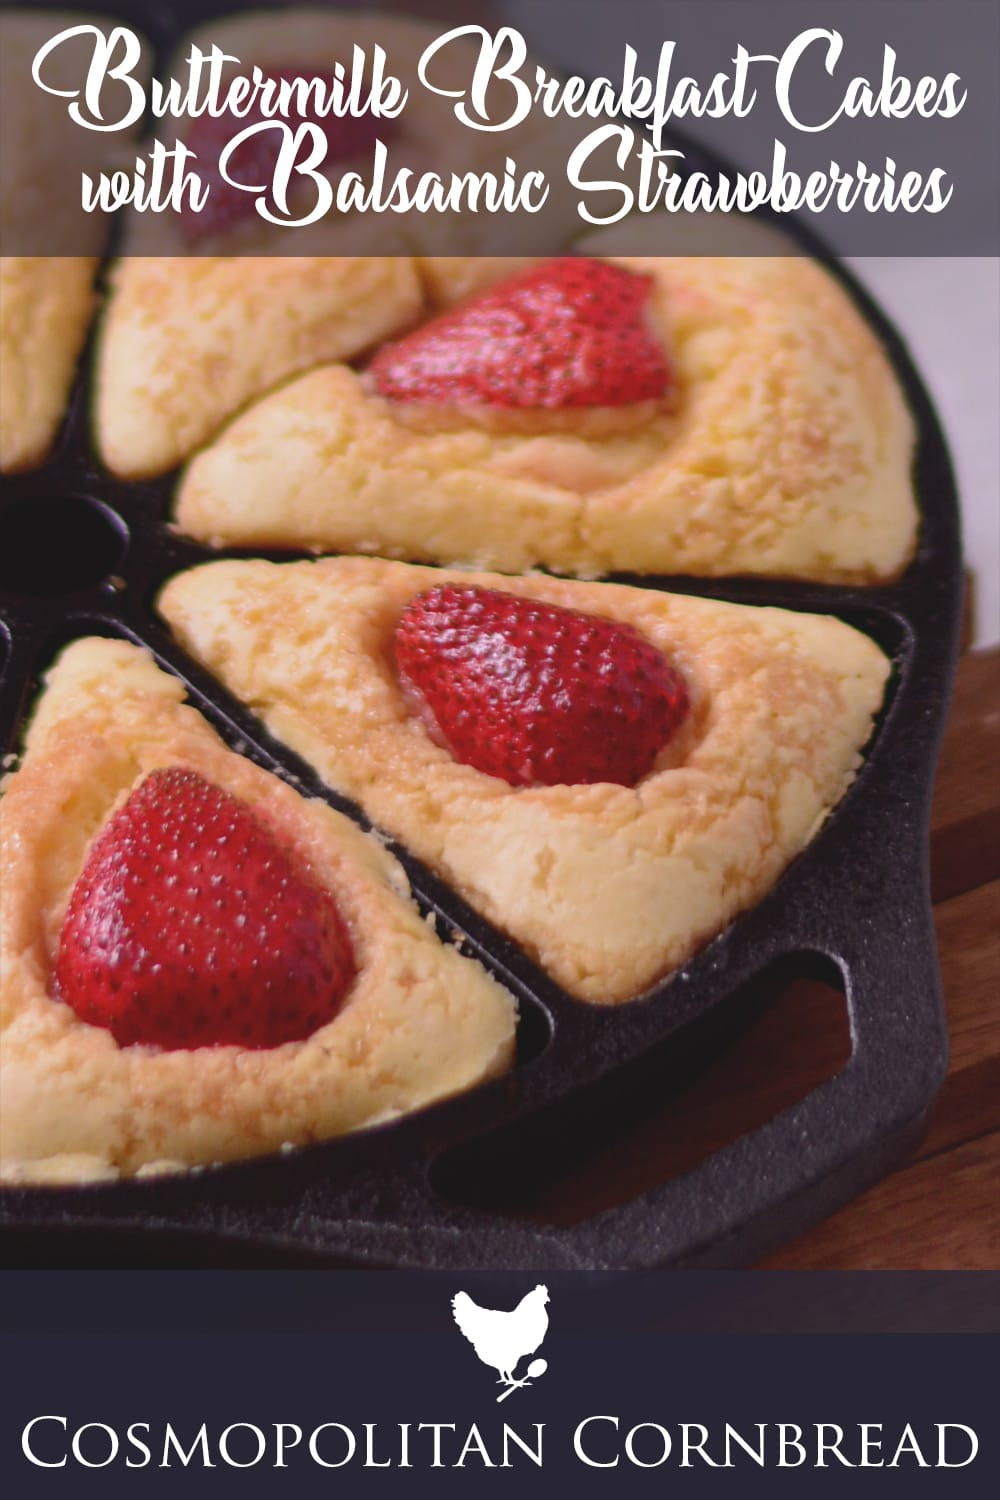 Delicious Buttermilk Breakfast Cakes with Roasted Balsamic Strawberries - Recipe from Cosmopolitan Cornbread